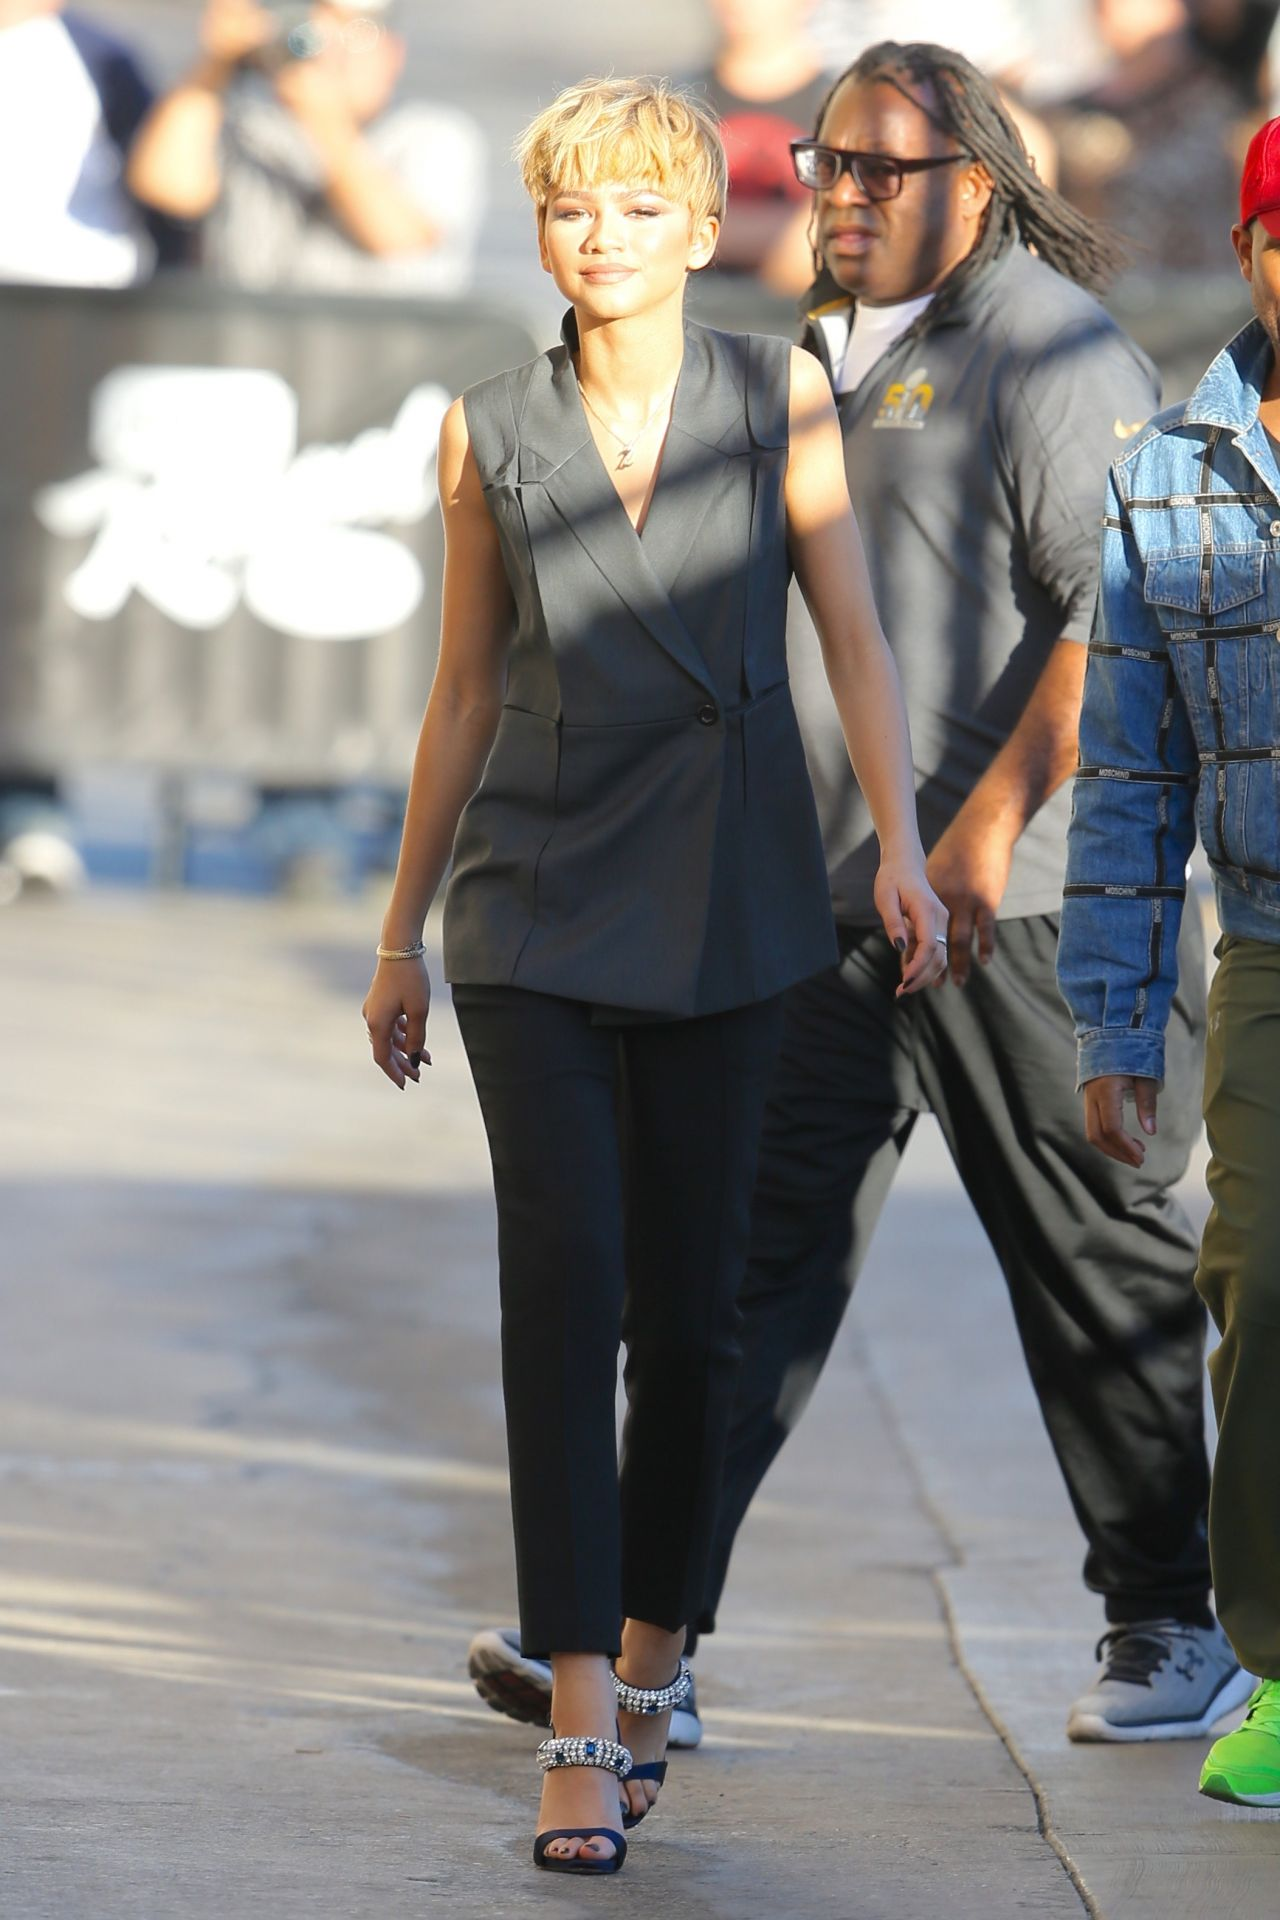 zendaya-coleman-arriving-to-appear-on-jimmy-kimmel-live-in-hollywood-2-10-2016-6